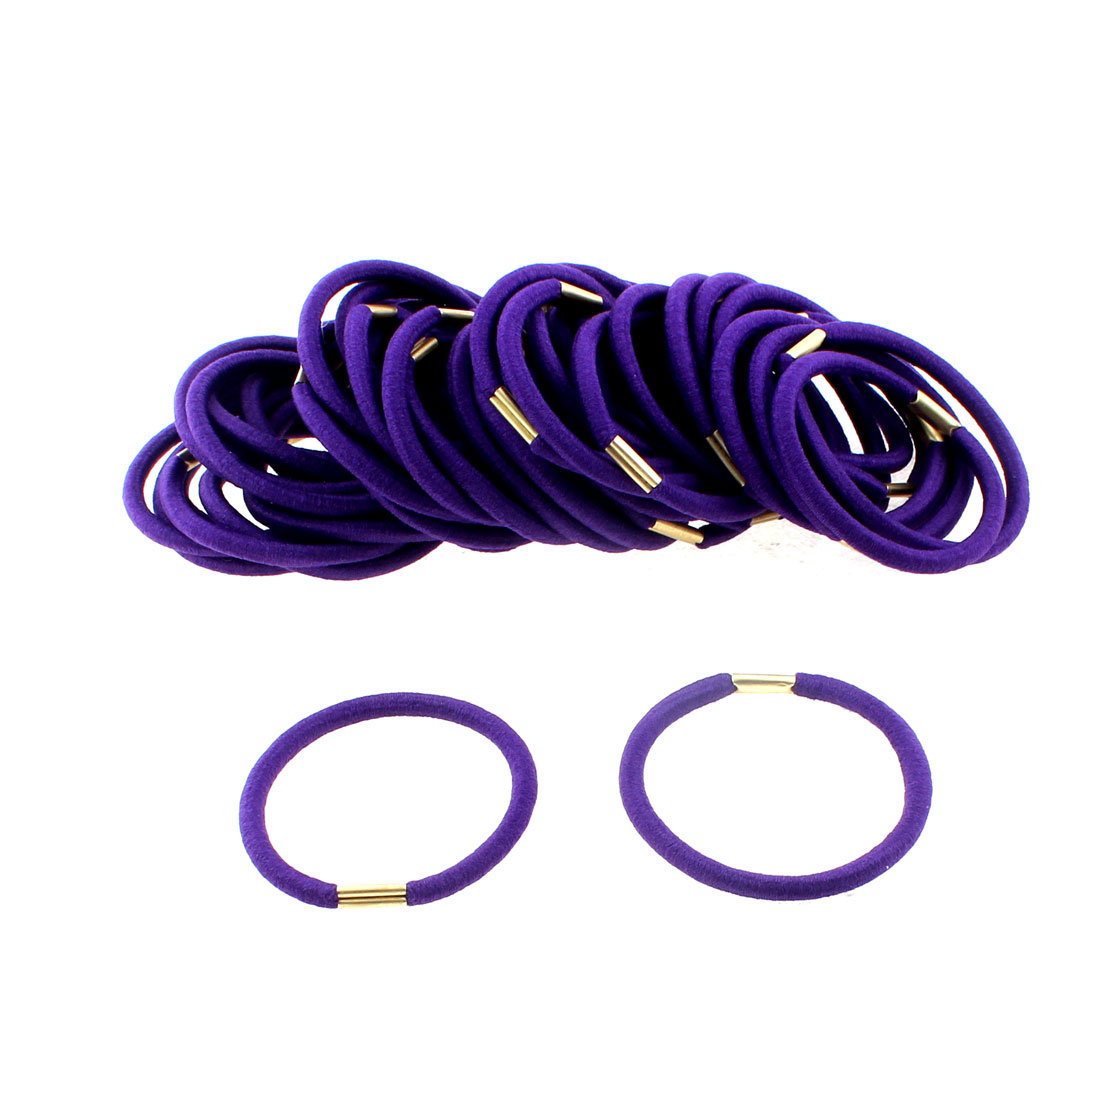 Women DIY Craft Elastic Hair Tie Rope Ring Band Hairband Ponytail Holder Purple 50pcs